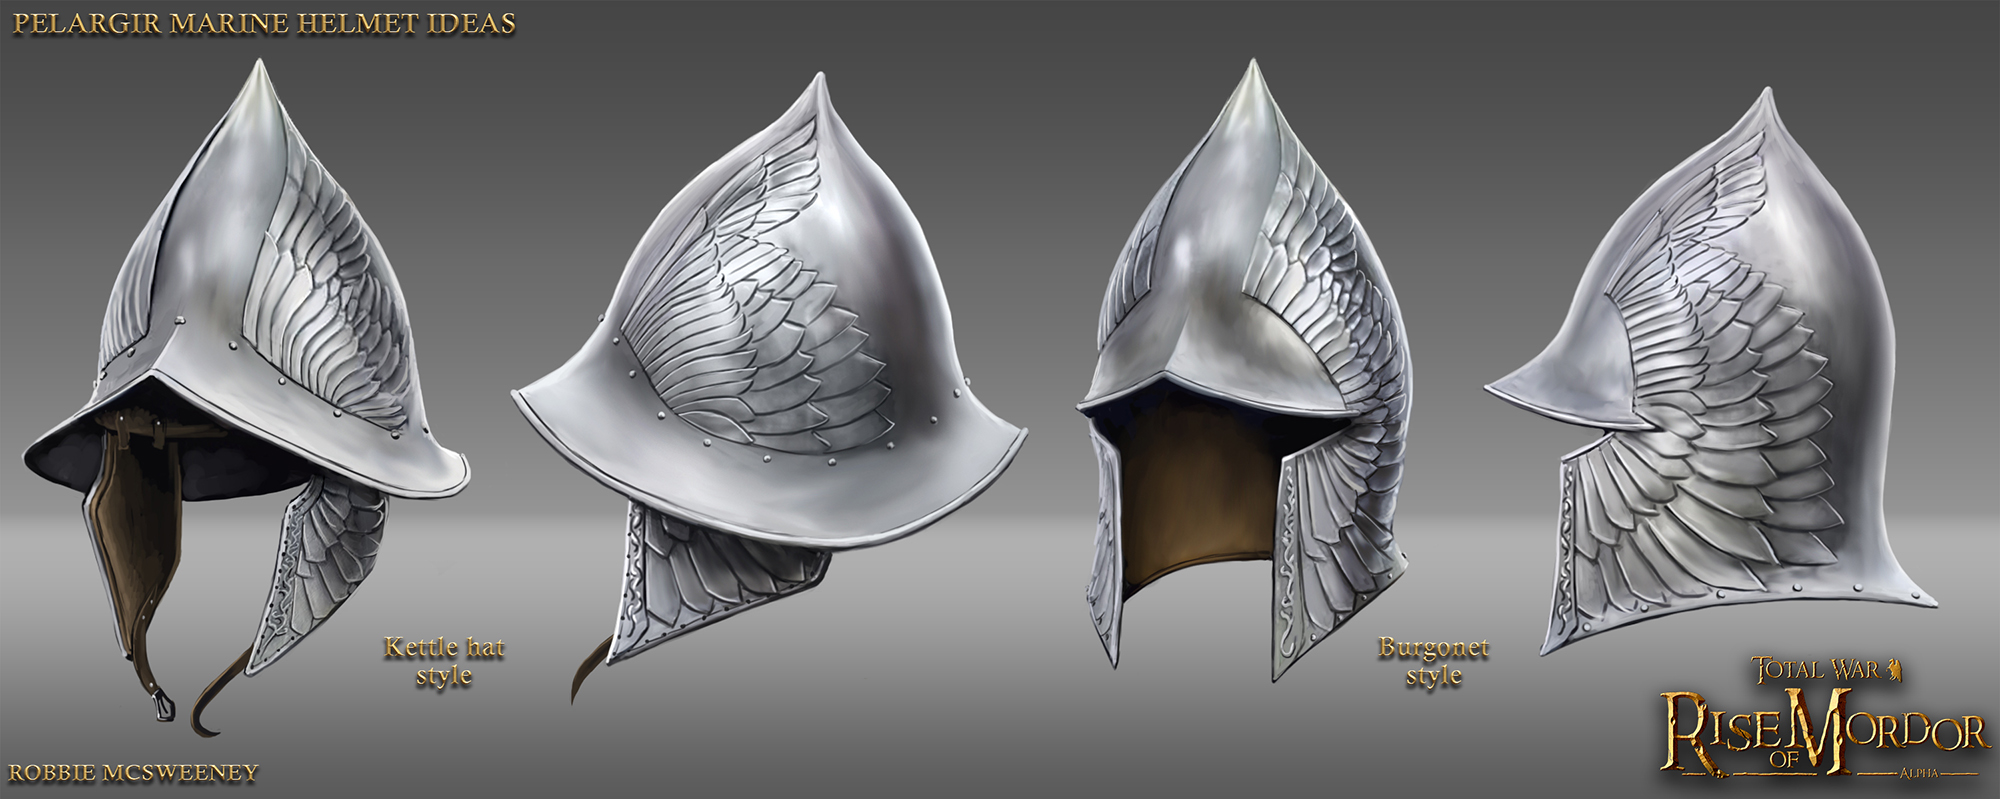 Pelargir helmet ideas